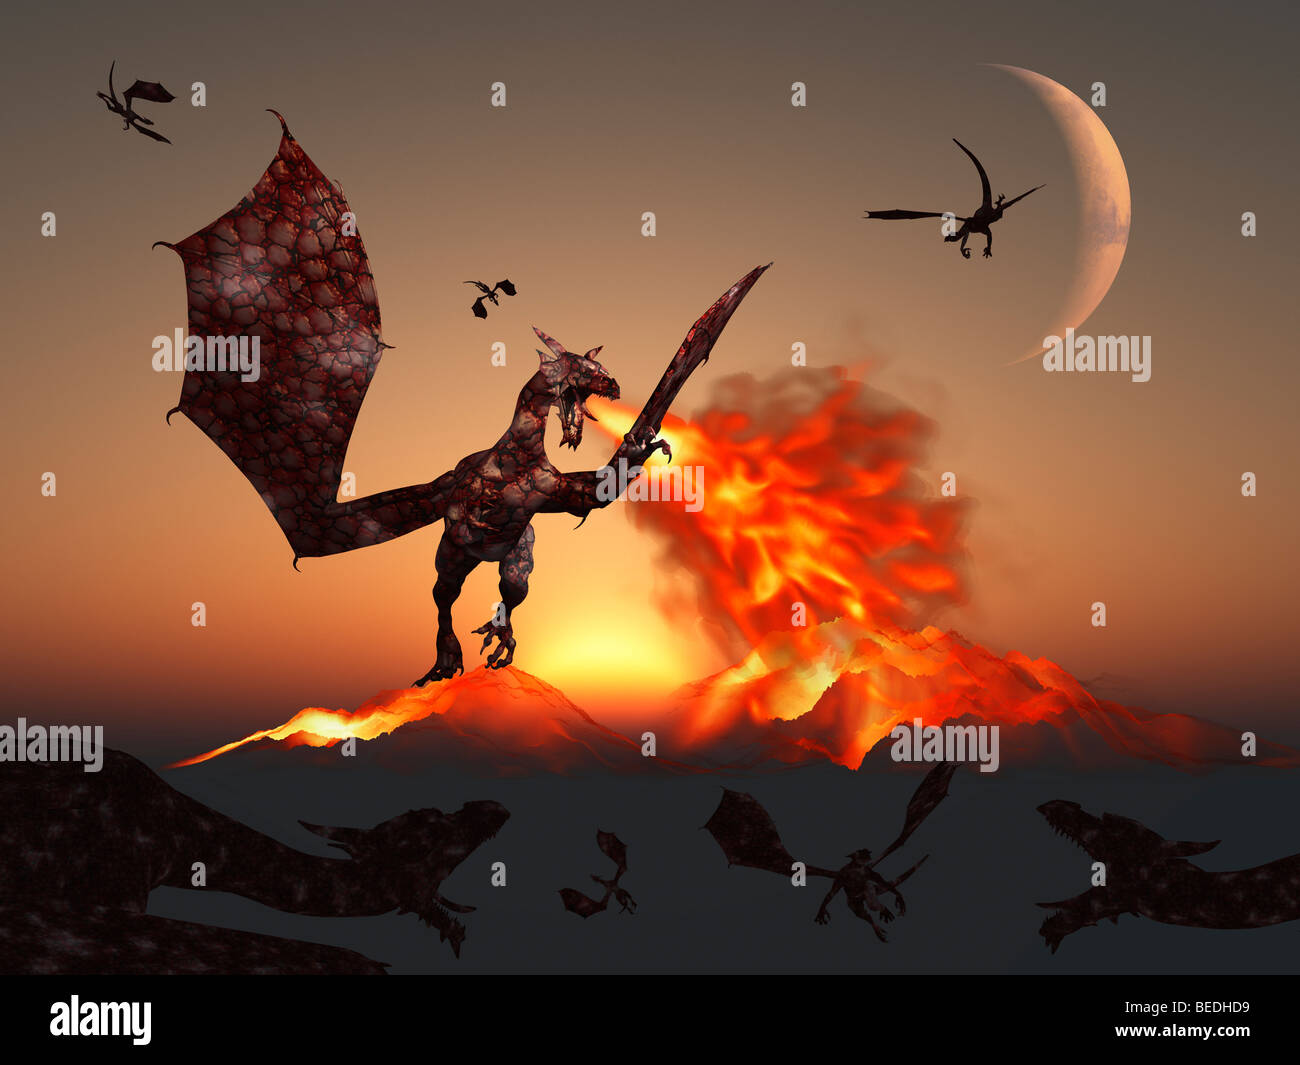 Fire Mountains ,  Produced By A Fire Breathing Dragon. - Stock Image